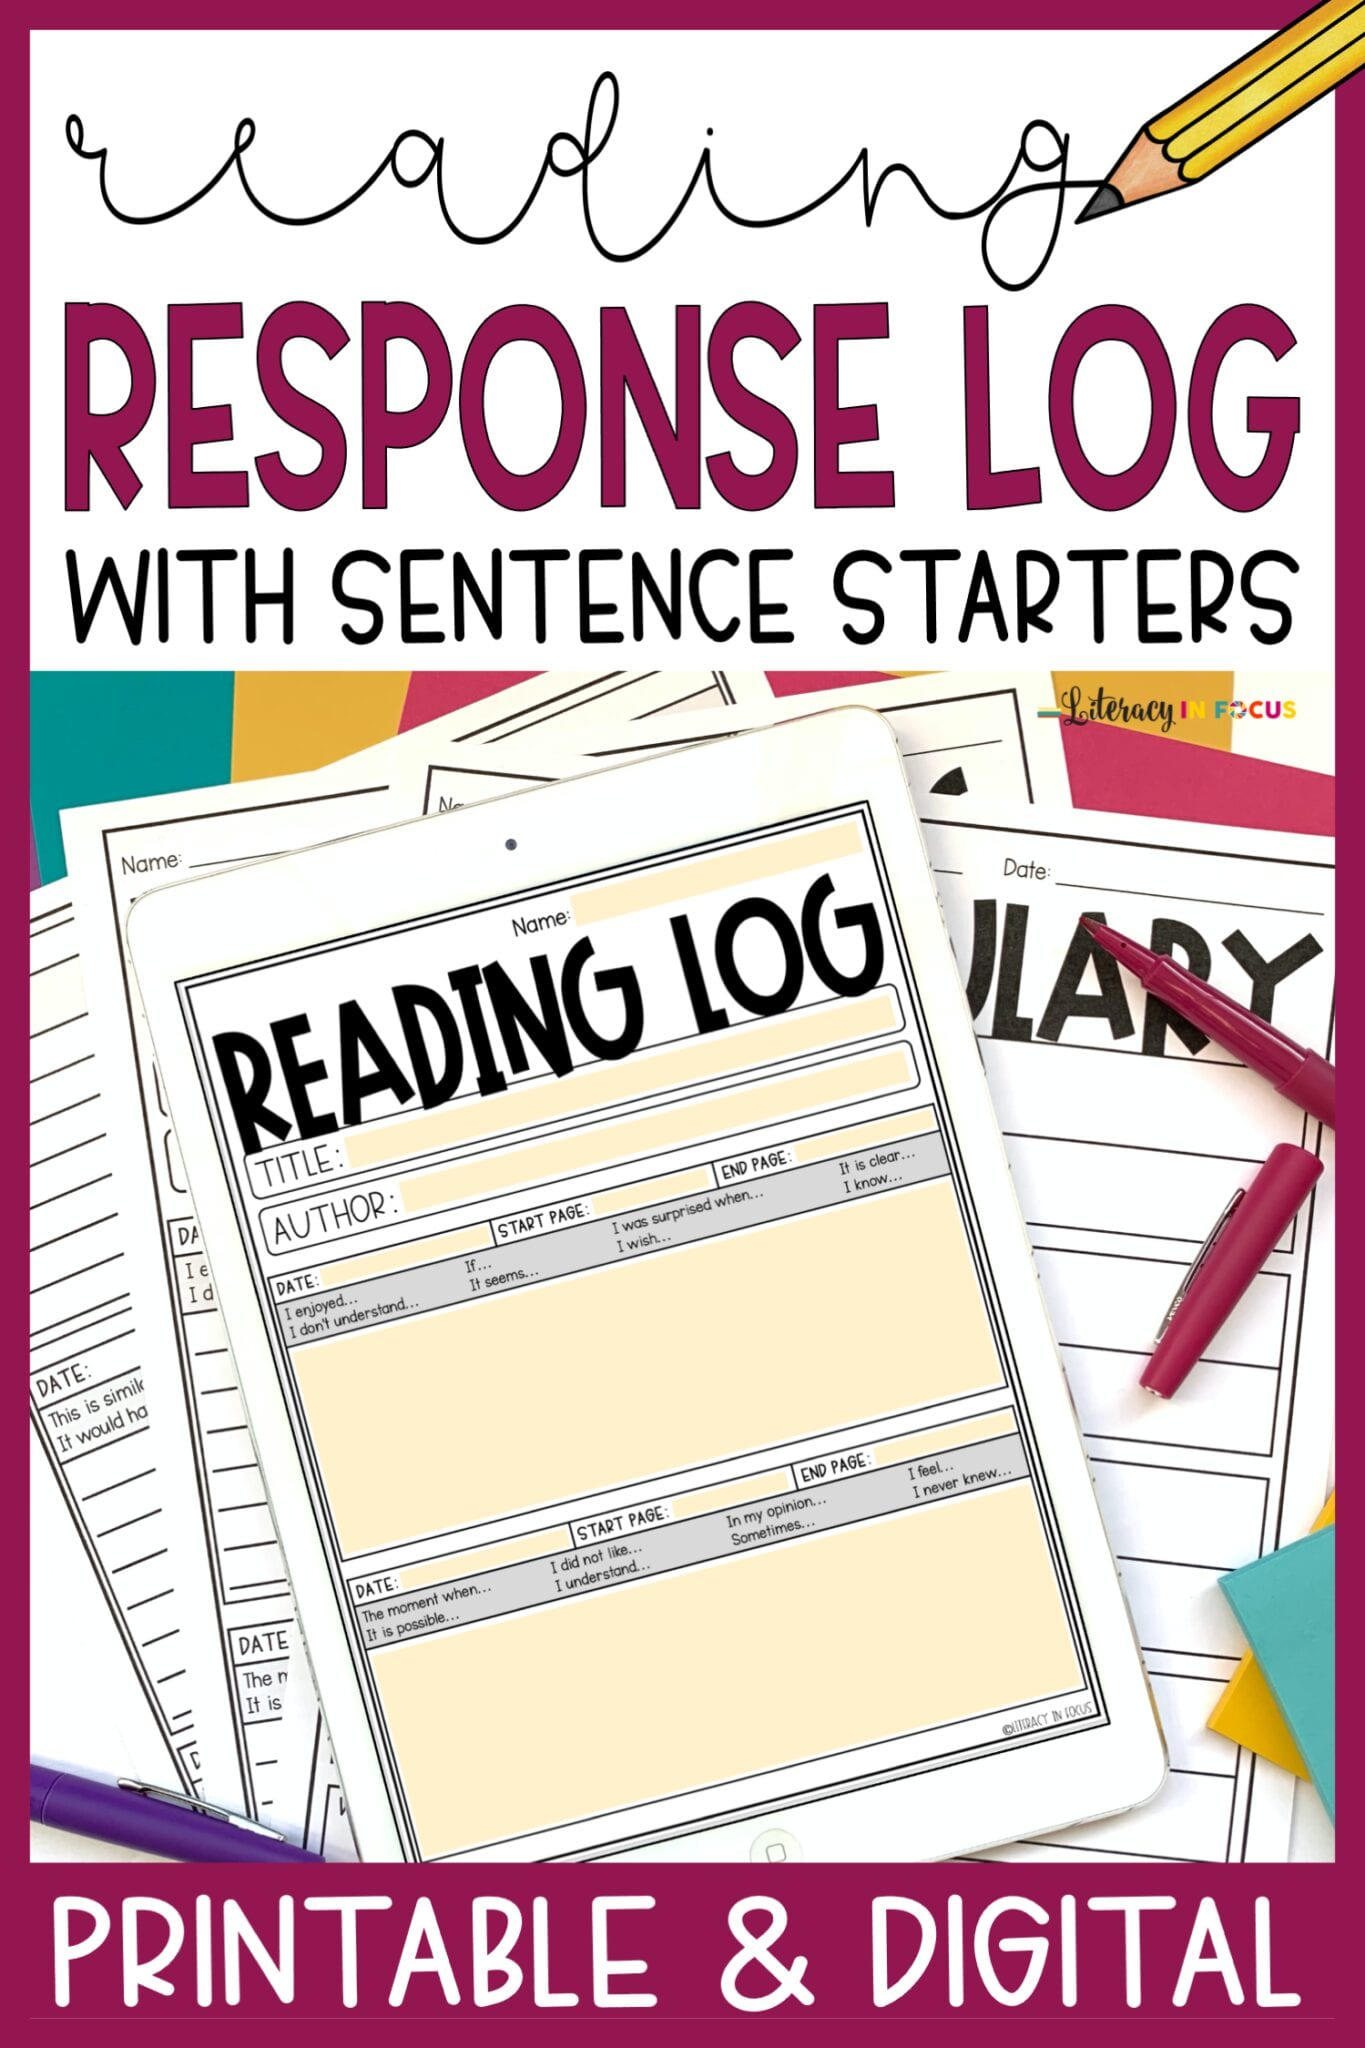 Reading Log with Summary